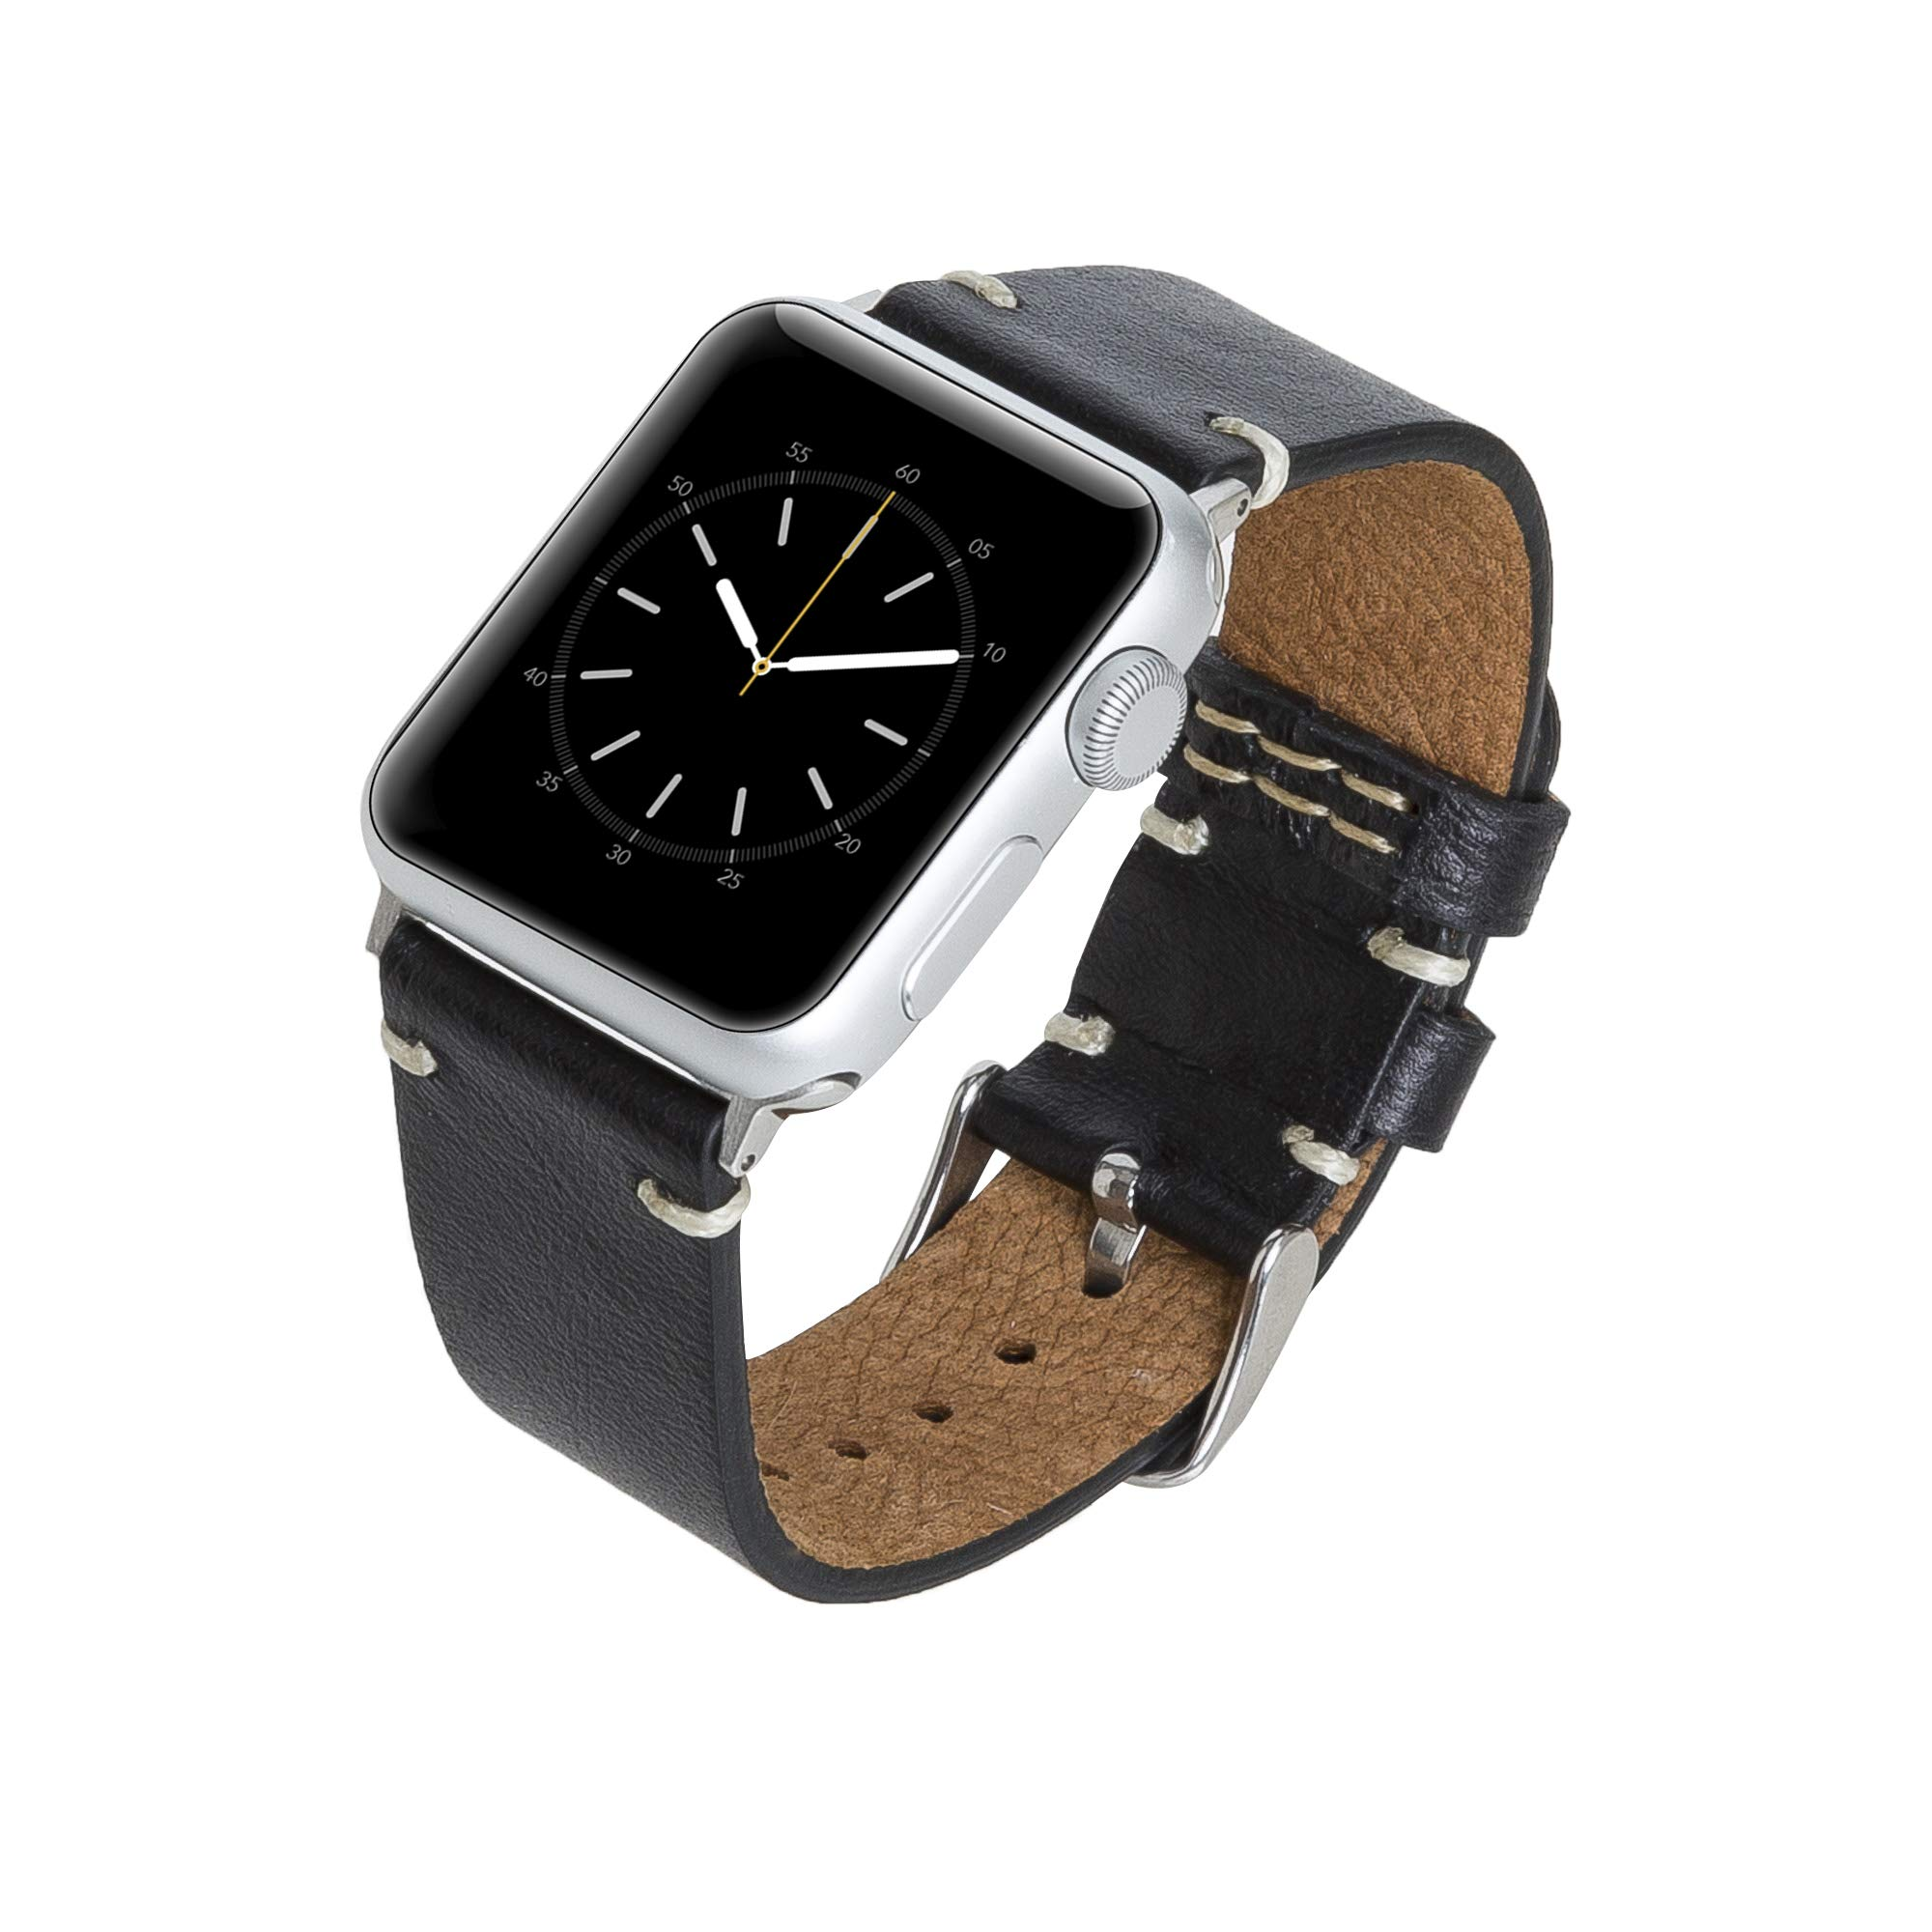 Venito Sarno Handmade Premium Leather Watch Band Compatible with The Newest Apple Watch iwatch Series 5 as Well as Series 1,2, 3,4 (Rustic Black w/Silver Stainless Steel Hardware, 38mm-40mm) by Venito